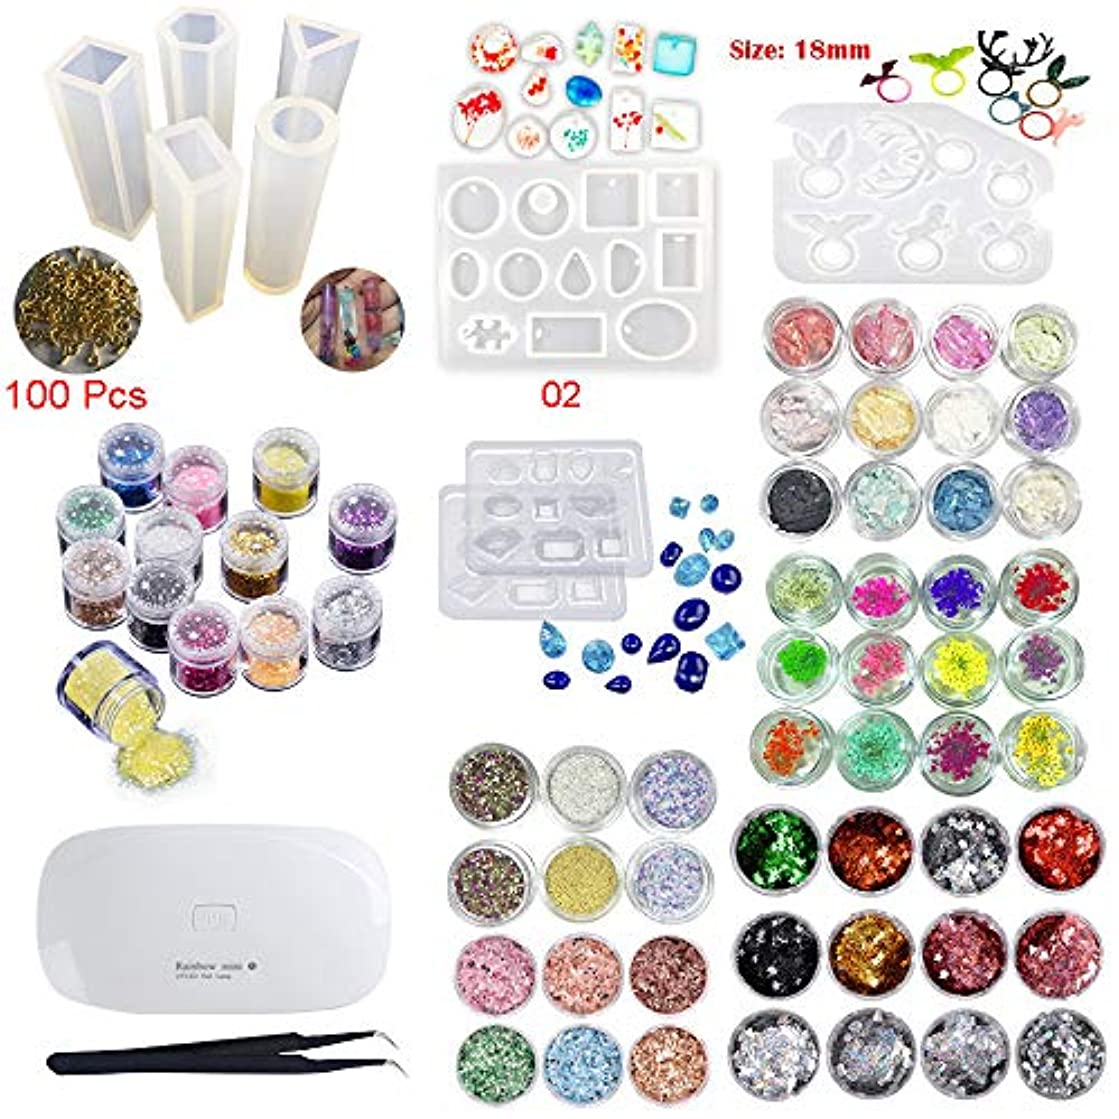 INNICON 9* Silicone Muolds 60x Sequins Set For Professional Making Decoration Sets Jewelry & Cosmetic Earrings 100 Screws Eye Pins Necklaces Gemstone Ring With Eagle UV Lamp